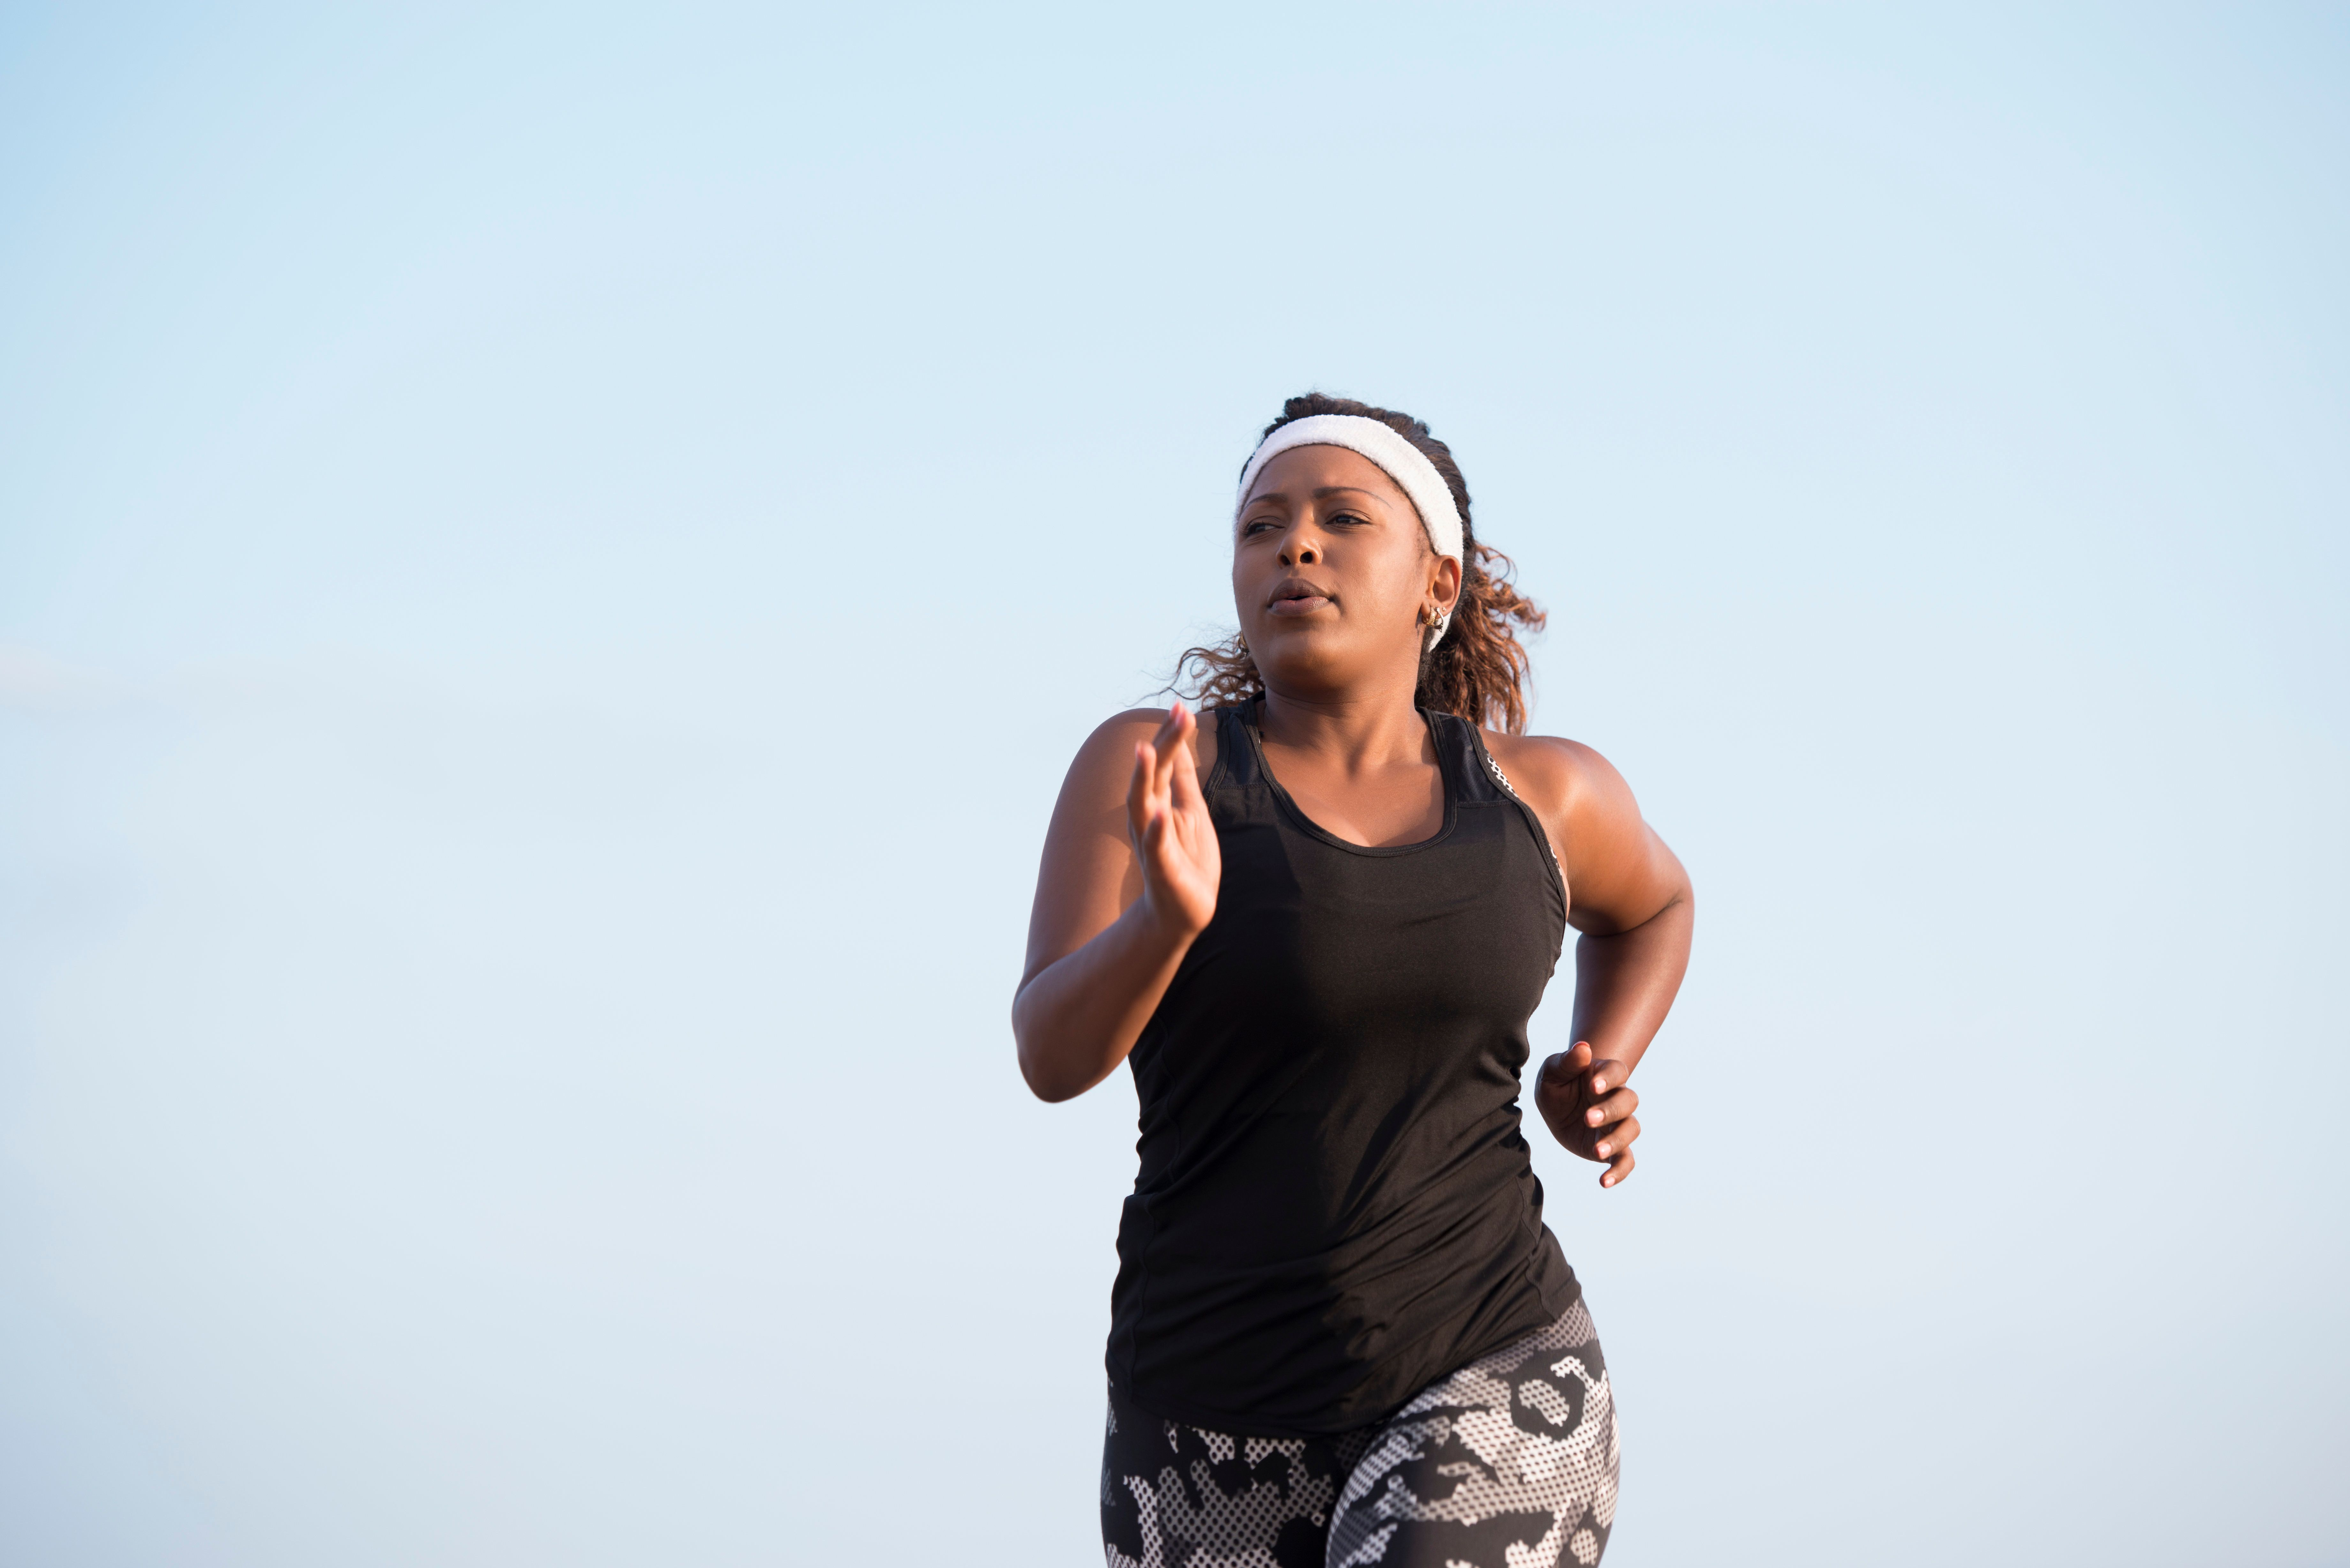 Is It Too Hot To Run? Why You Might Want To Put Your Workout On